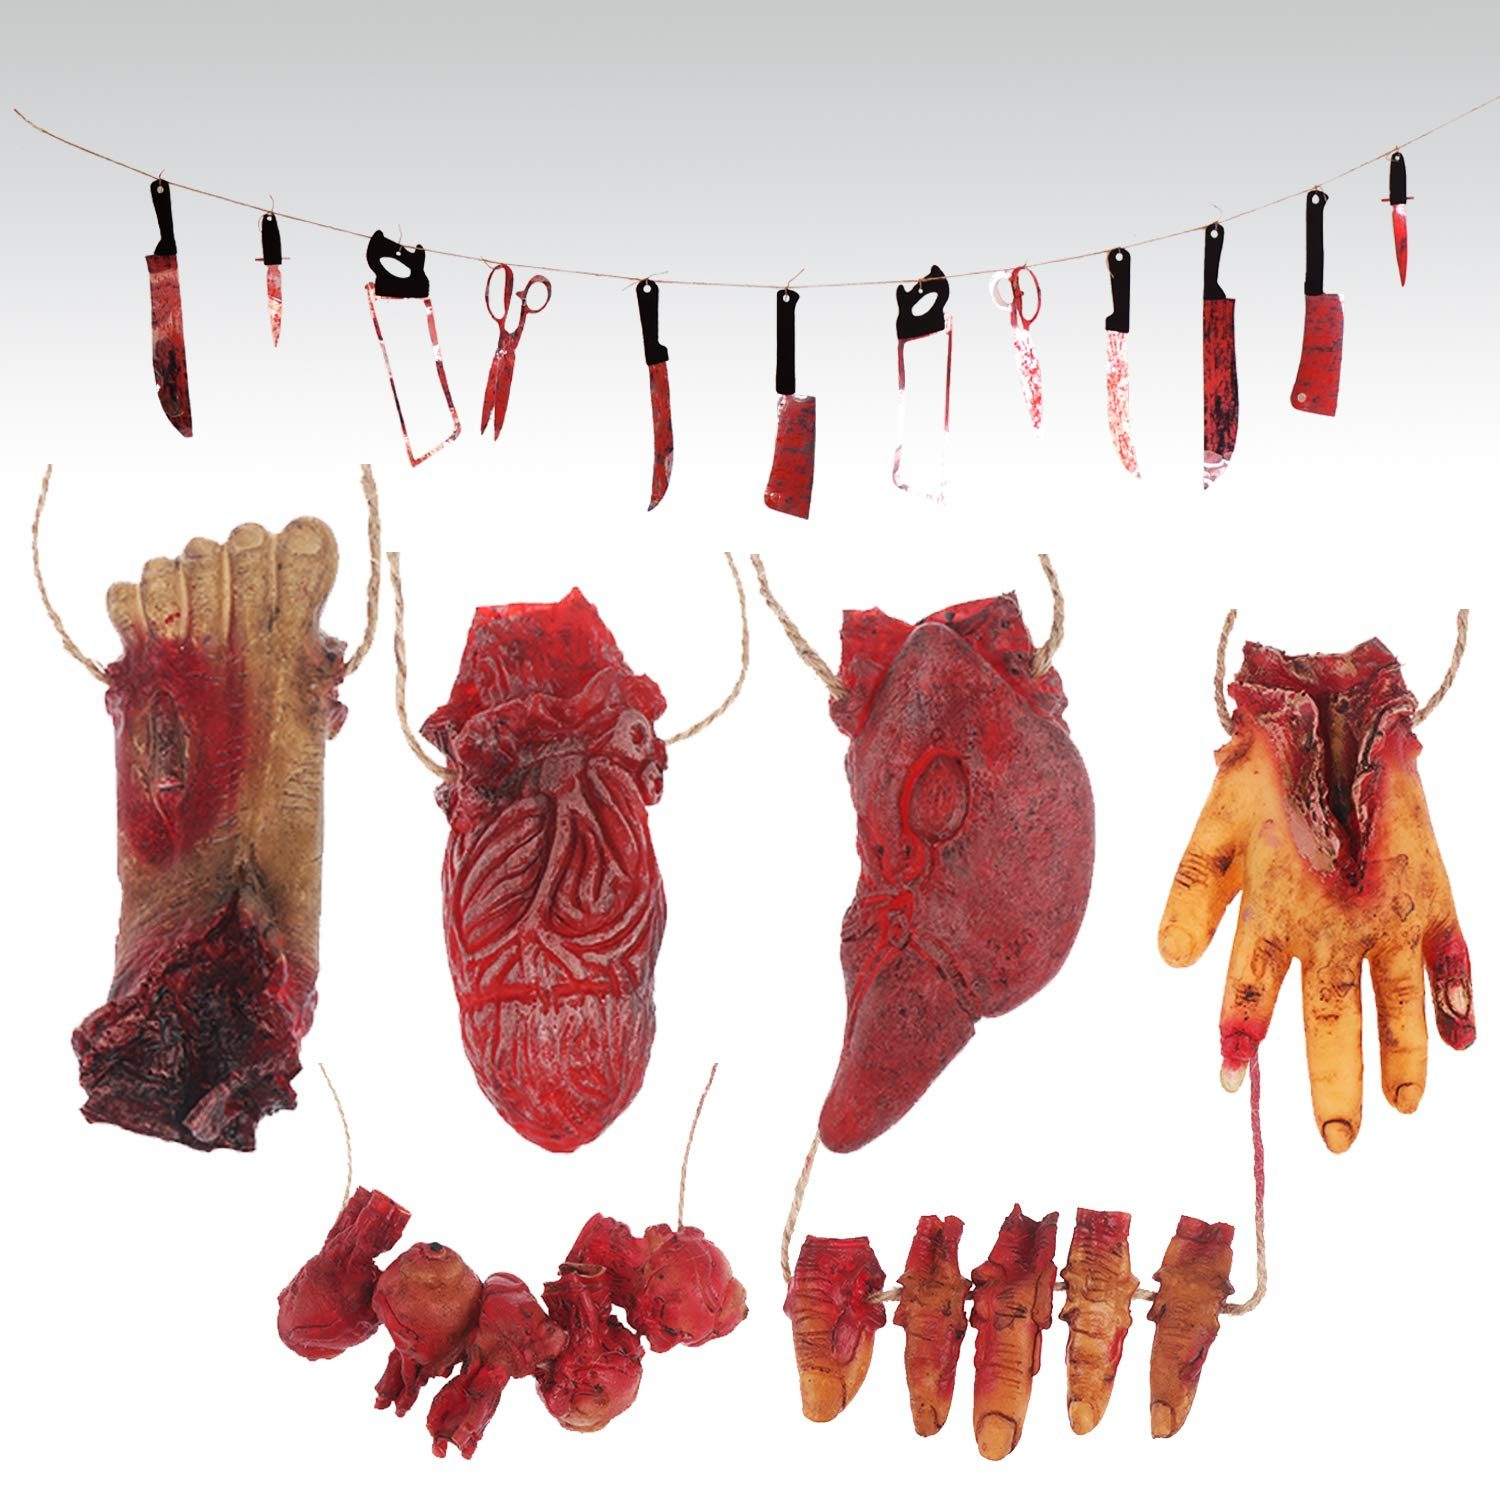 Omigga 18 pcs Halloween Props Decorations Blood Weapon Garland Banner Hand Broken Body Parts Fake Scary Blood Props for Halloween Party Haunted Houses Decorations,6 Body Parts +12 Weapon by Omigga